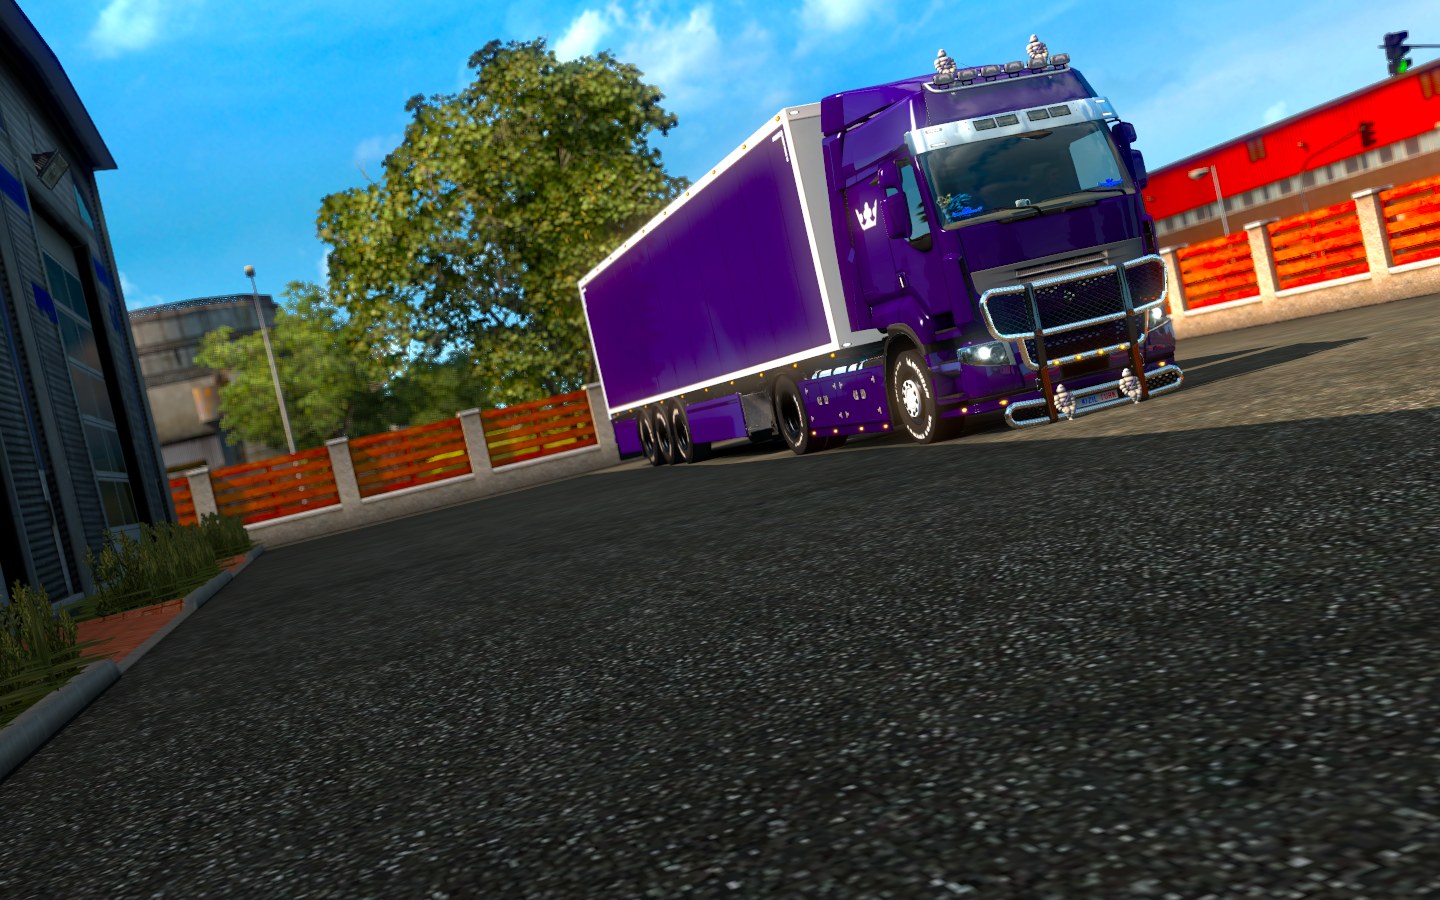 ets2_20181019_173728_00.png